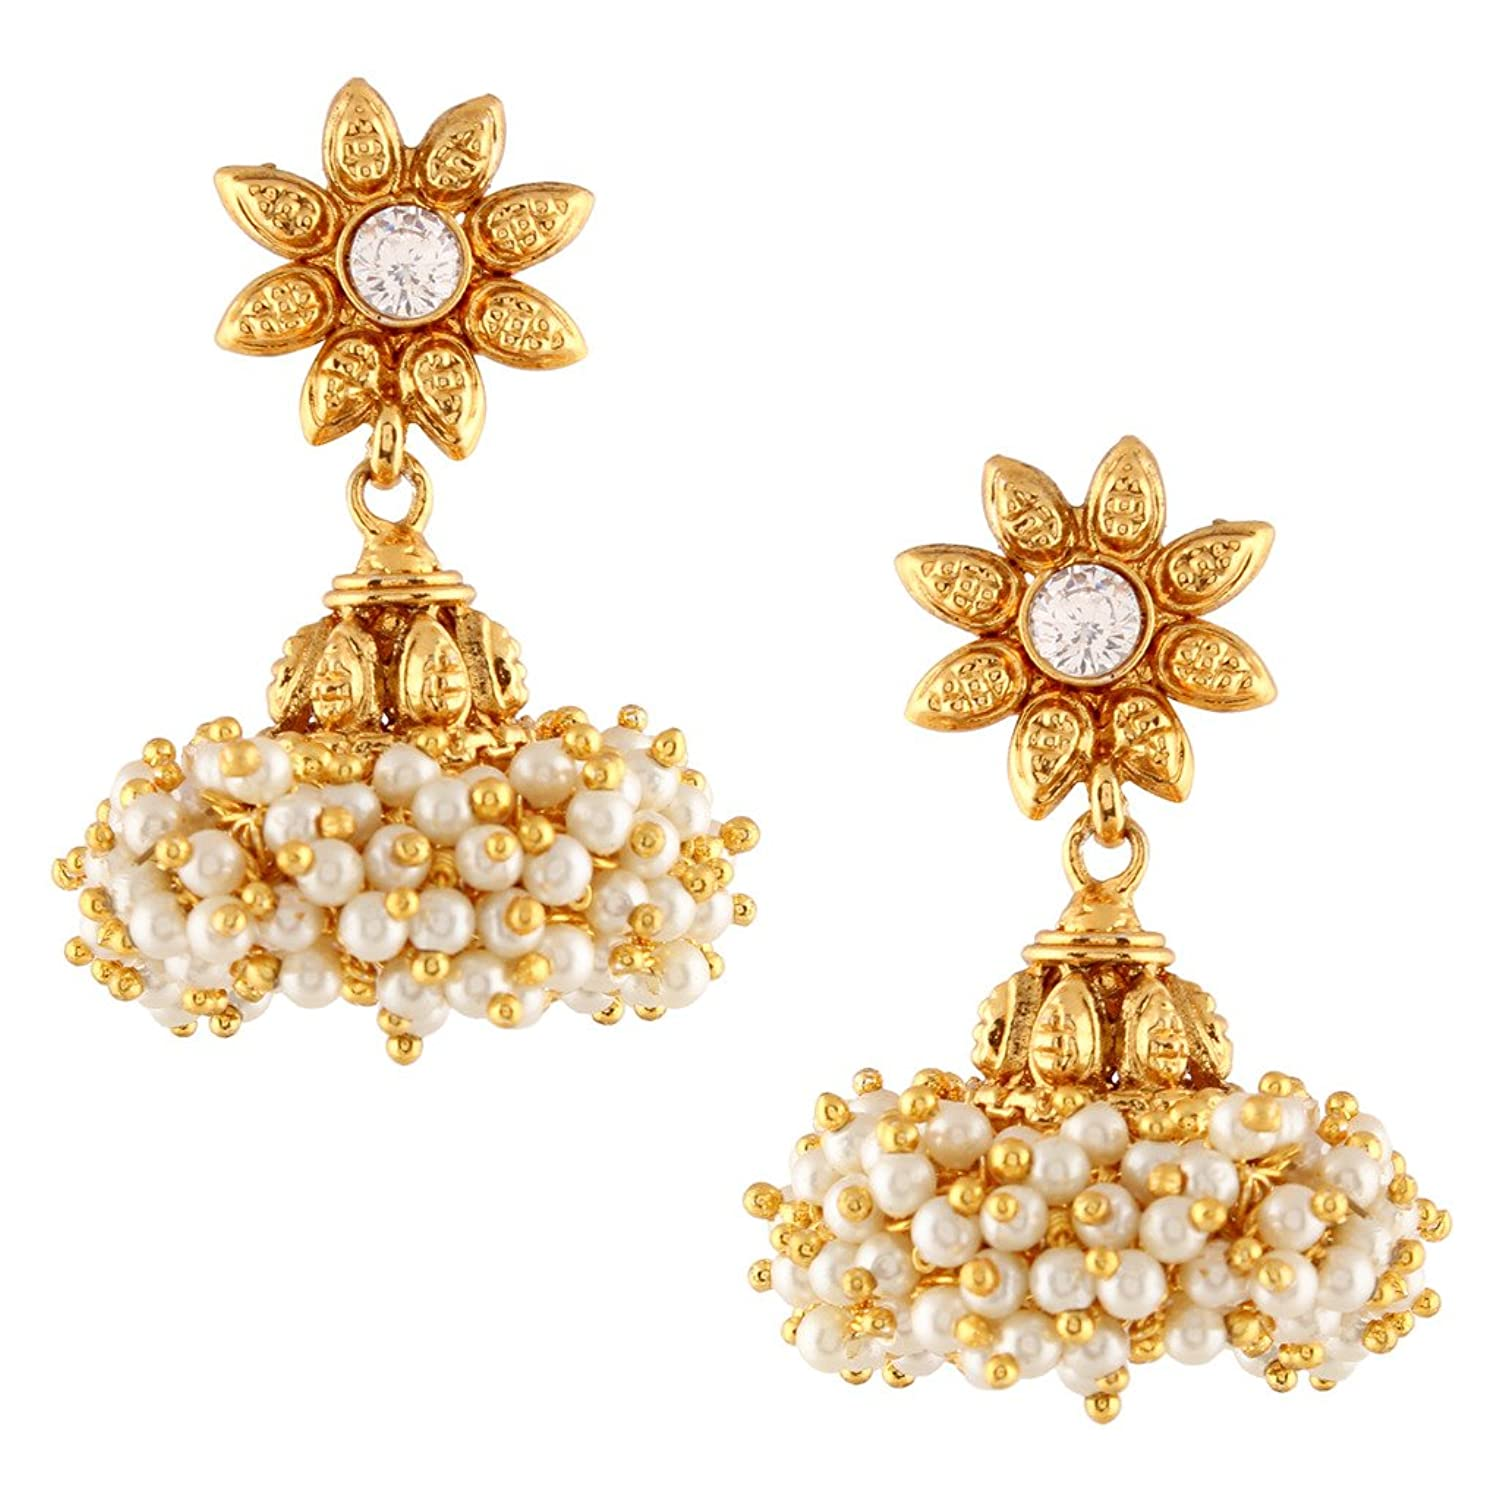 South Indian Style Earrings Image collections - Jewelry Design ...